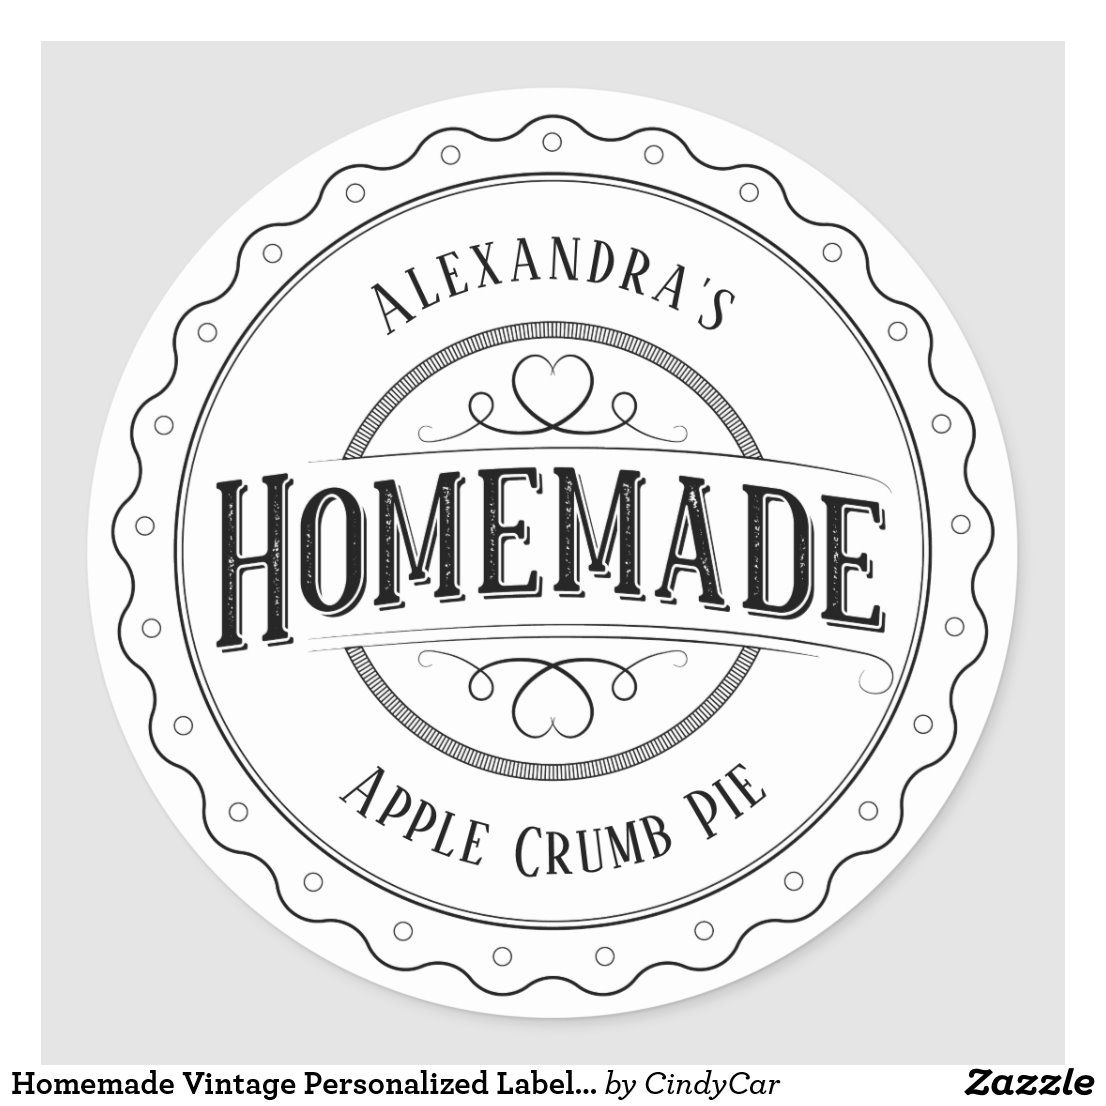 Homemade Vintage Personalized Label Stickers Zazzle Com In 2020 Personalized Stickers Labels Personalized Labels Sticker Labels